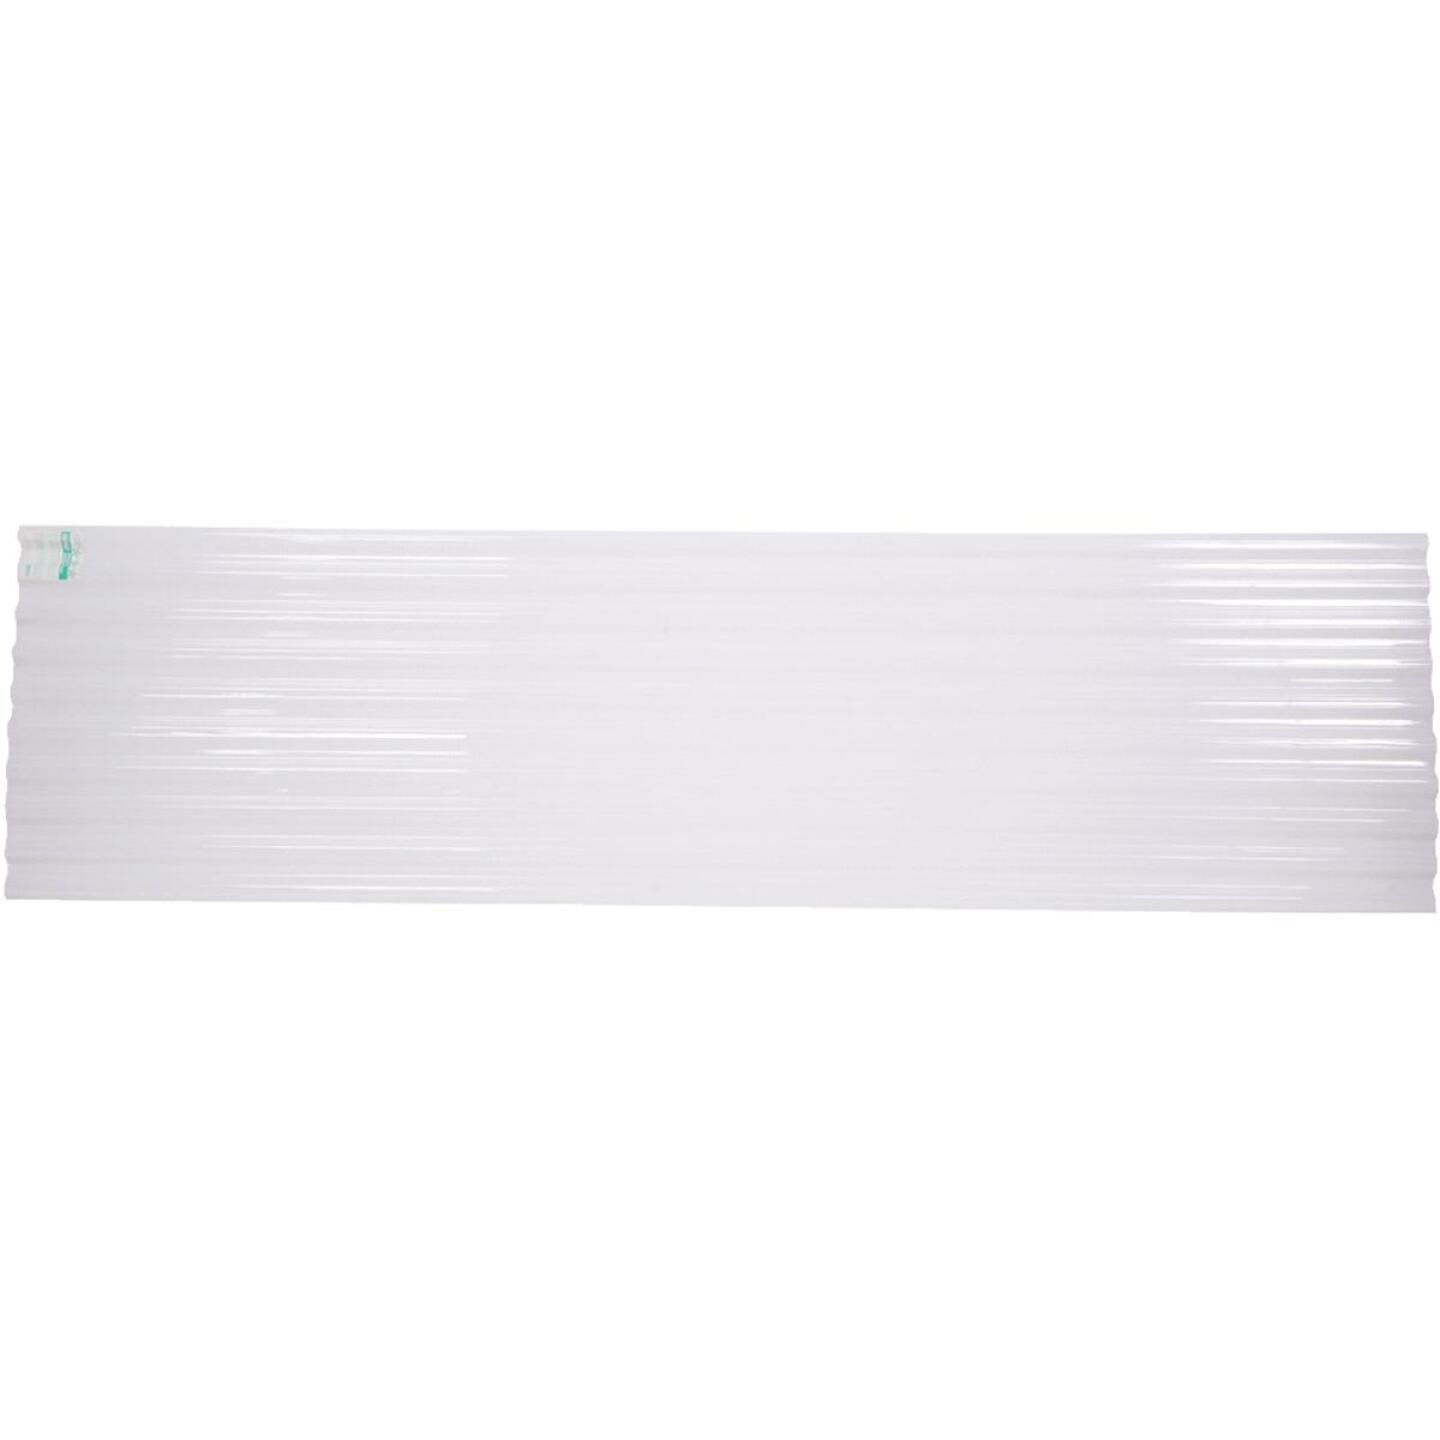 Tuftex PolyCarb 26 In. x 12 Ft. Translucent White Square Wave Polycarb & Vinyl Corrugated Panels Image 1